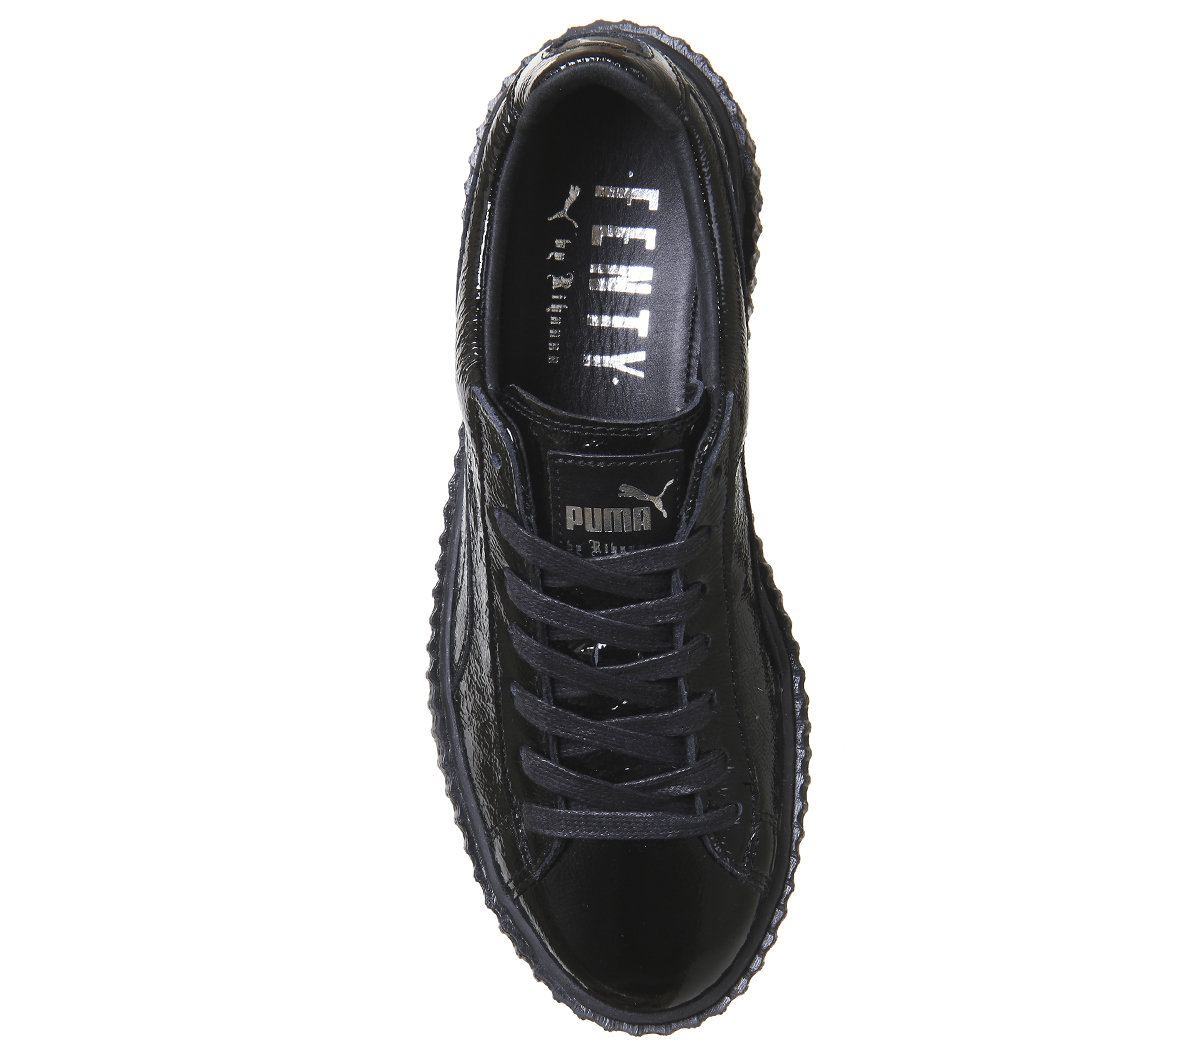 info for 21b67 309ae ... Chaussures-Femme-Puma-Basket-creepers-noir-craquele-cuir-